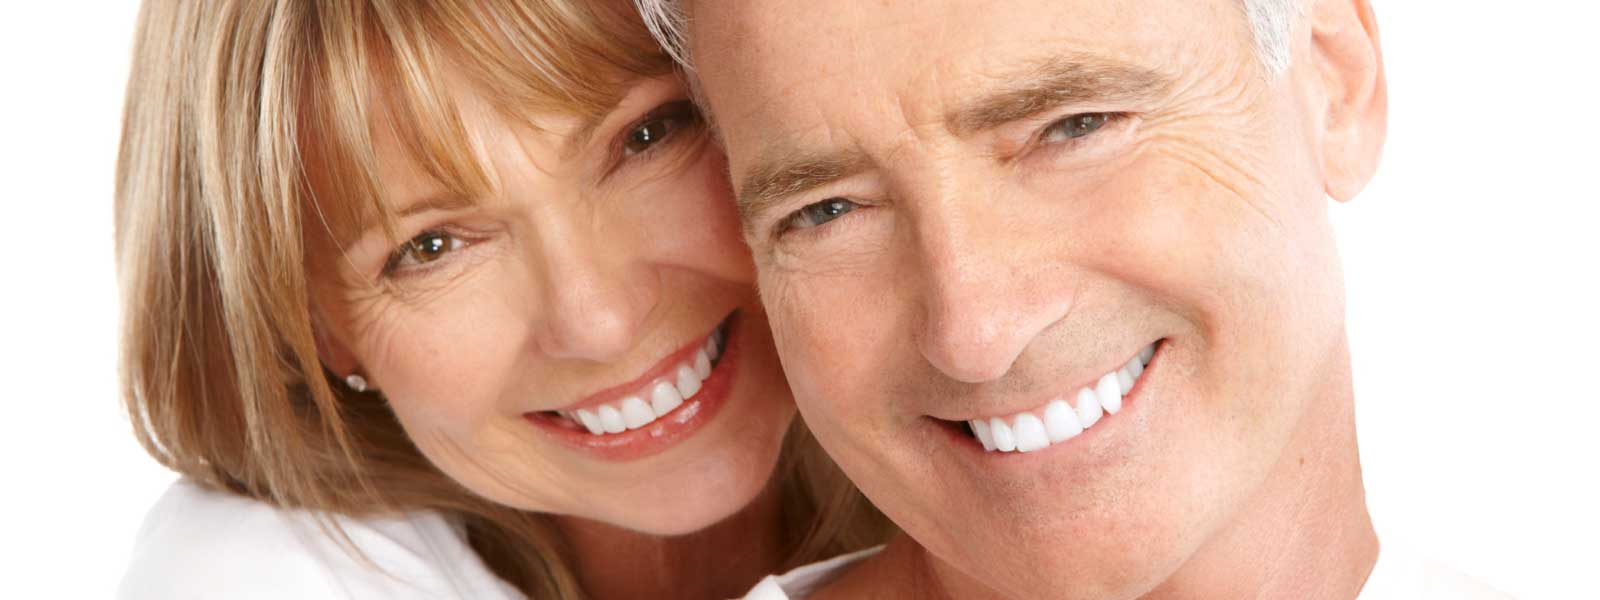 Full and partial dentures restore appearance and function